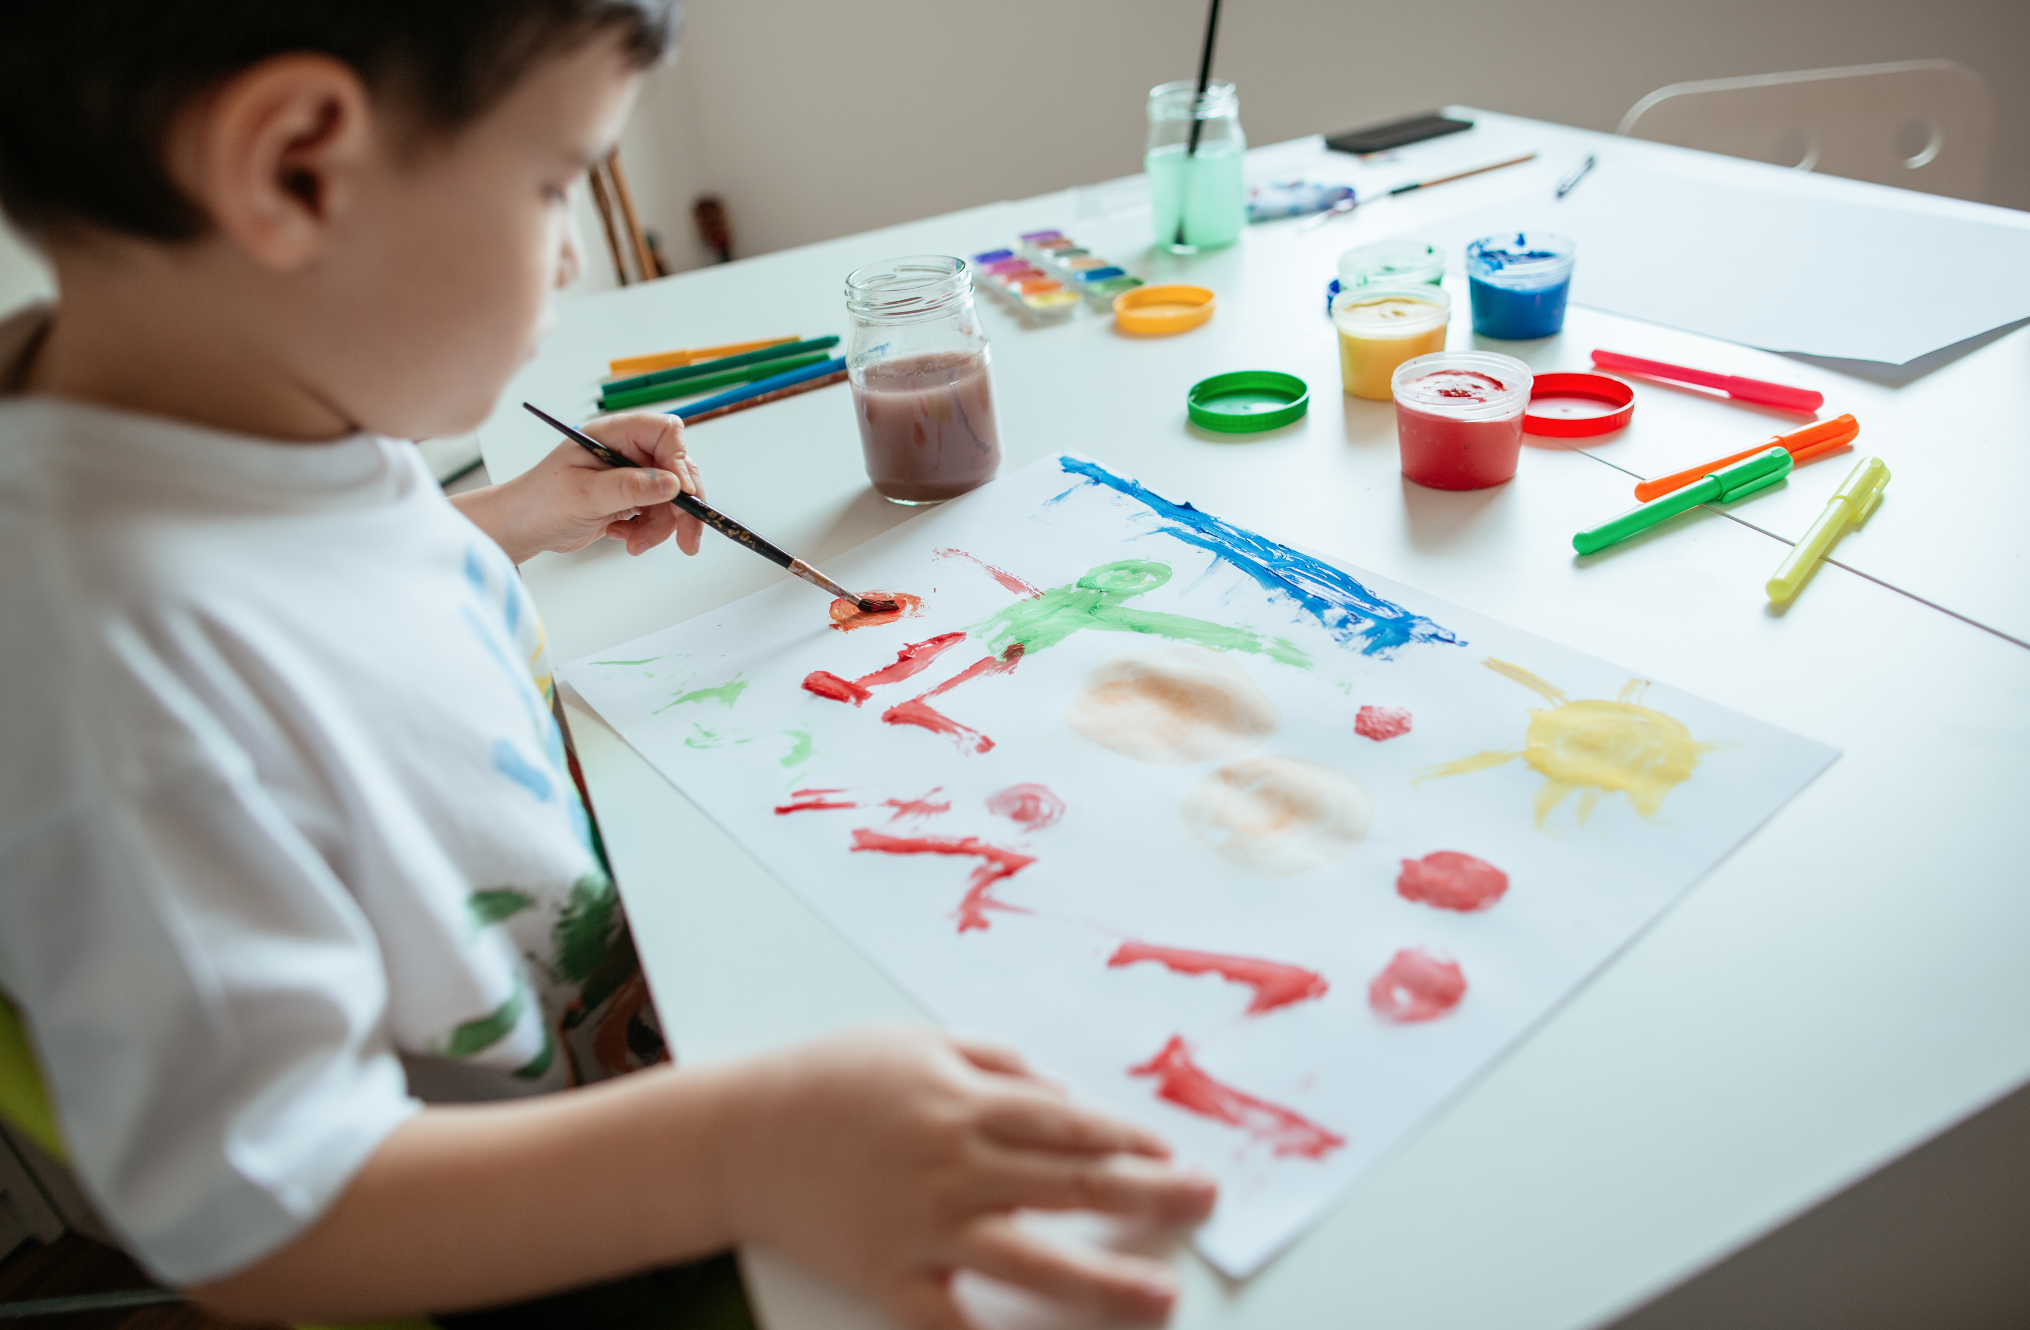 creative activities while unschooling